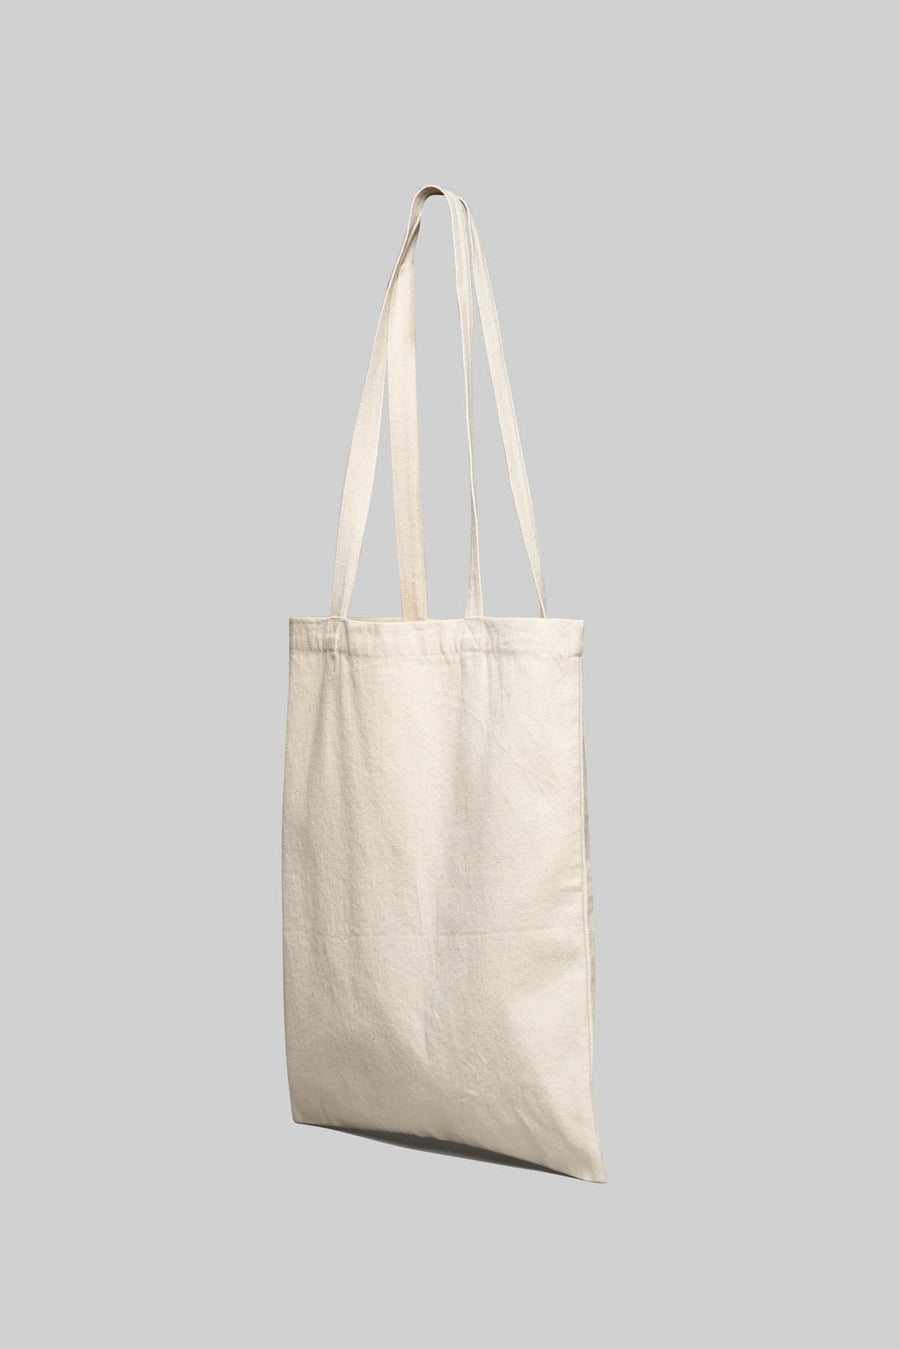 ØLÅF Citizens Tote Bag <br>Beige